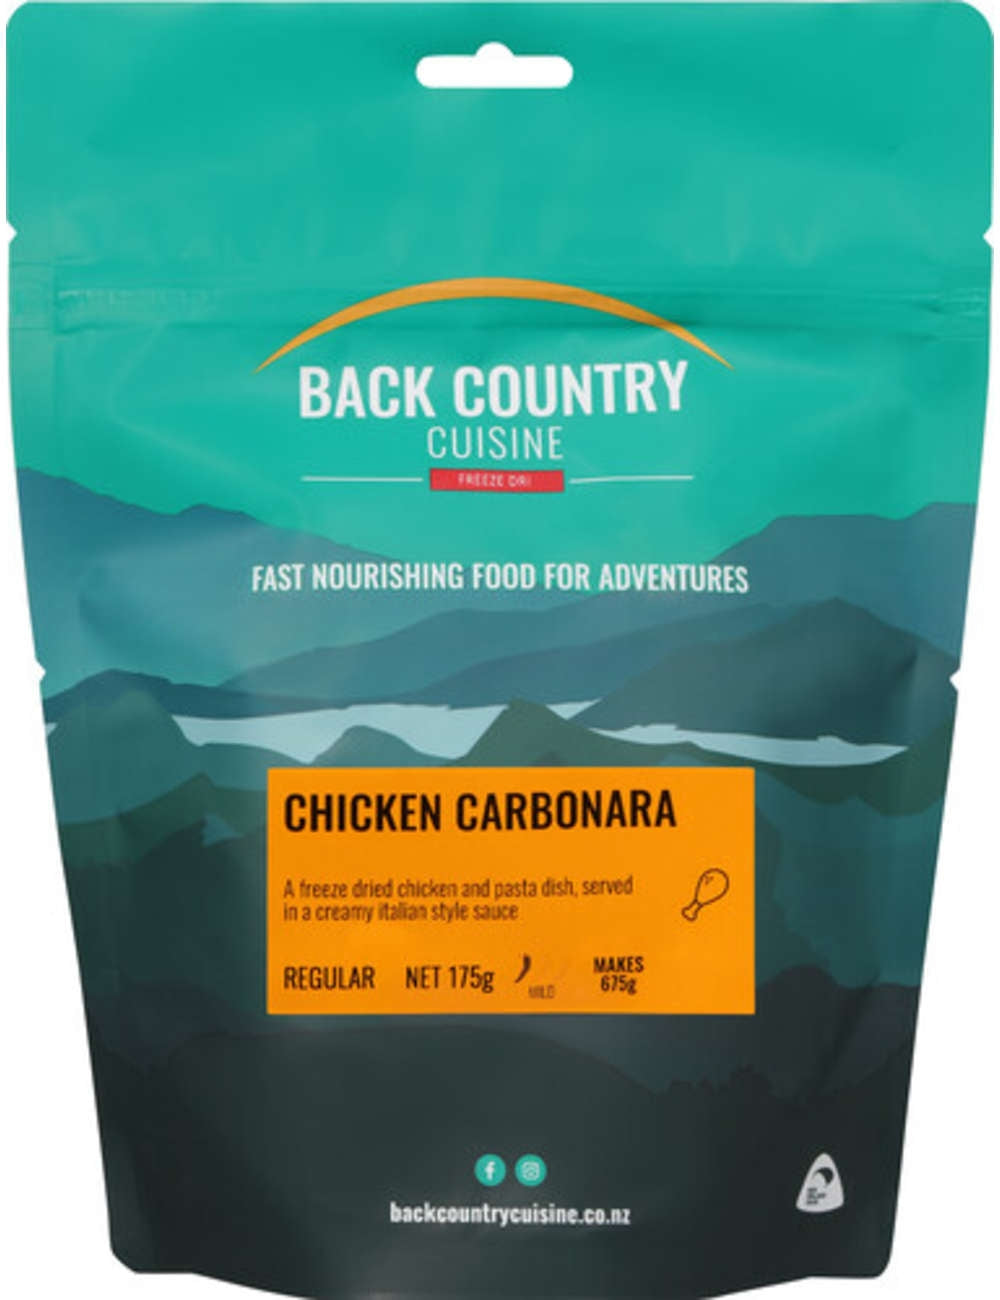 Back Country Cuisine Meals - Chicken Carbonara - Find Your Feet Australia Hobart Launceston Tasmania